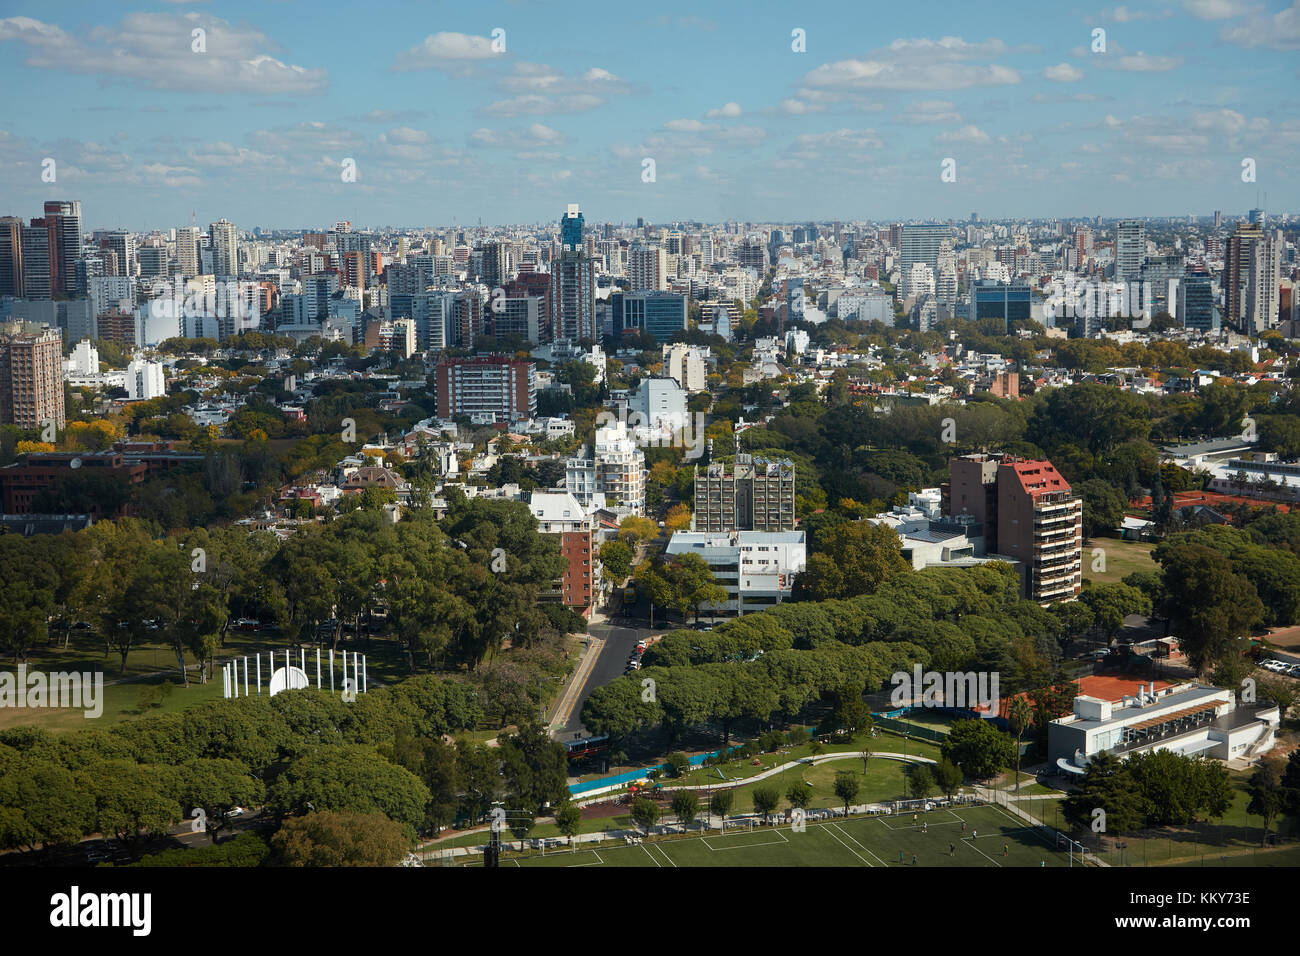 Parks and apartments, Belgrano, Buenos Aires, Argentina, South America - aerial - Stock Image